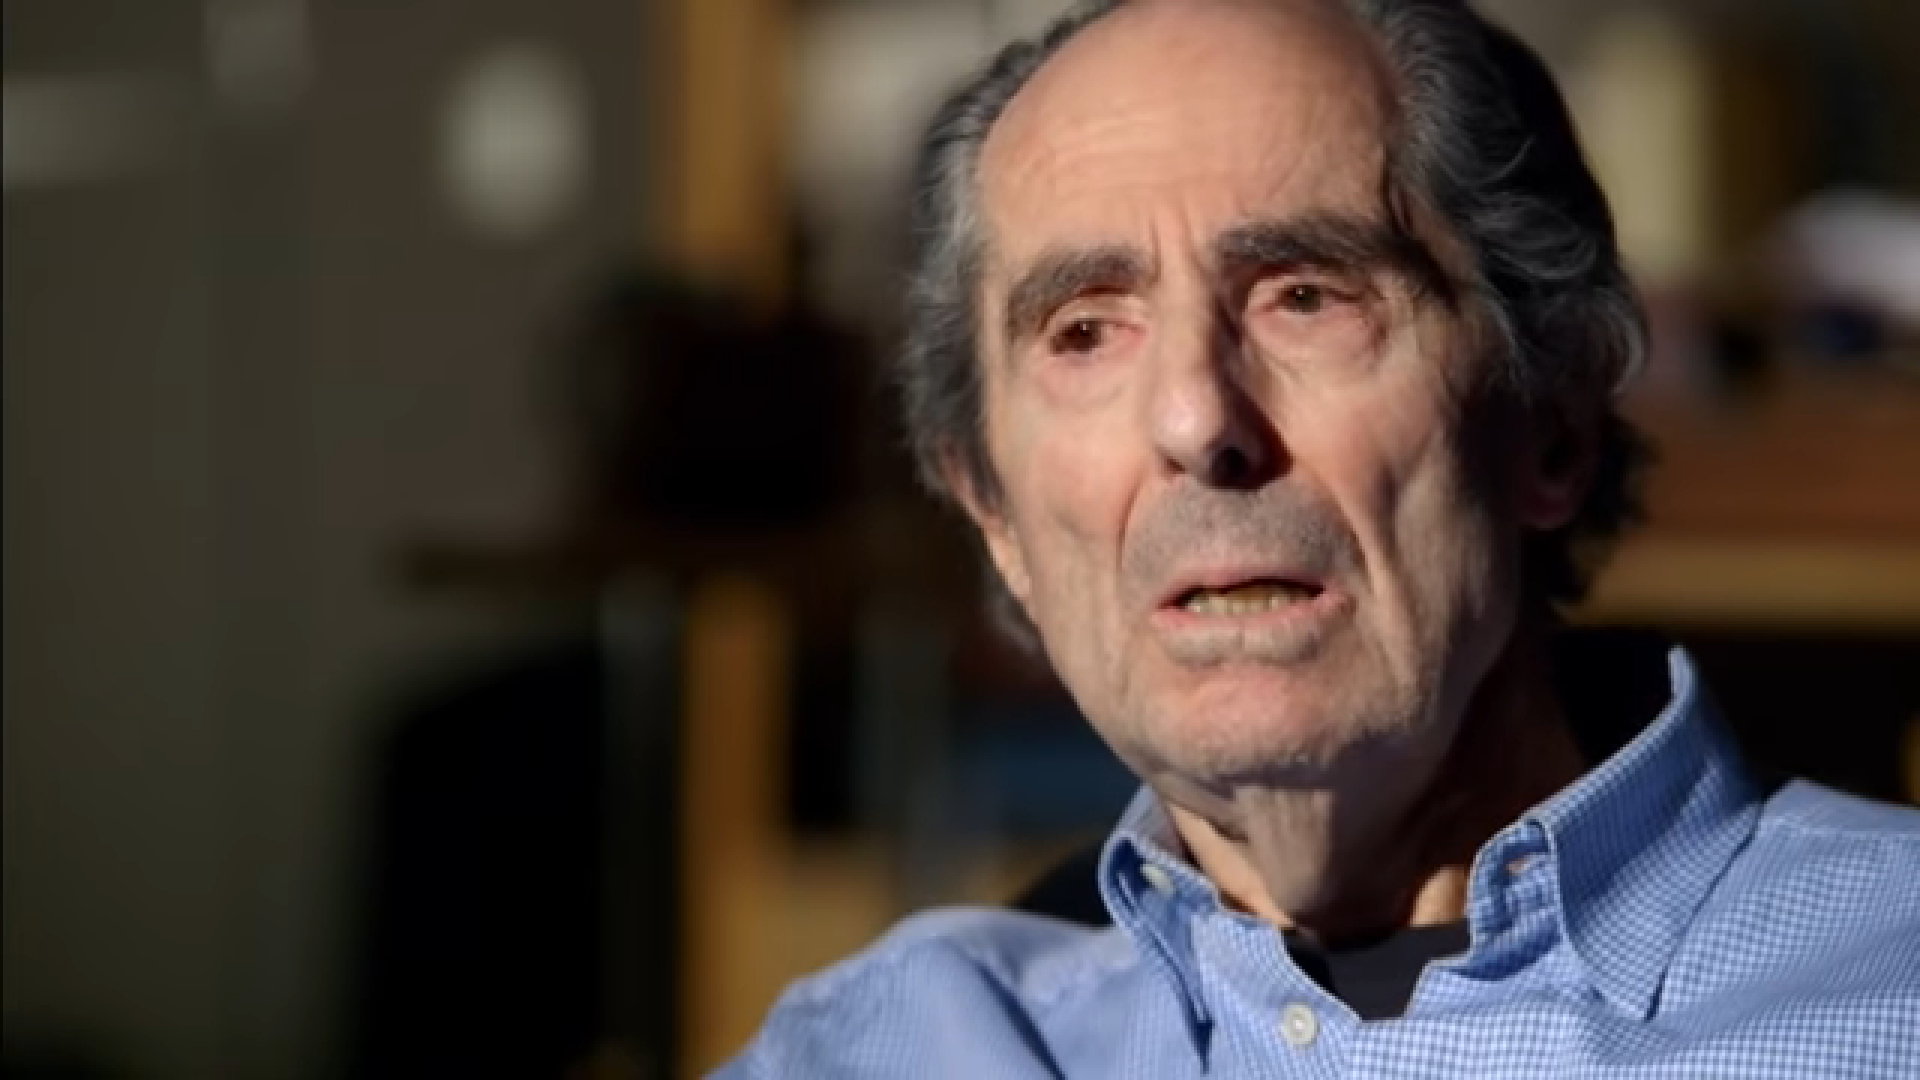 Writer Philip Roth dies at 85 years old